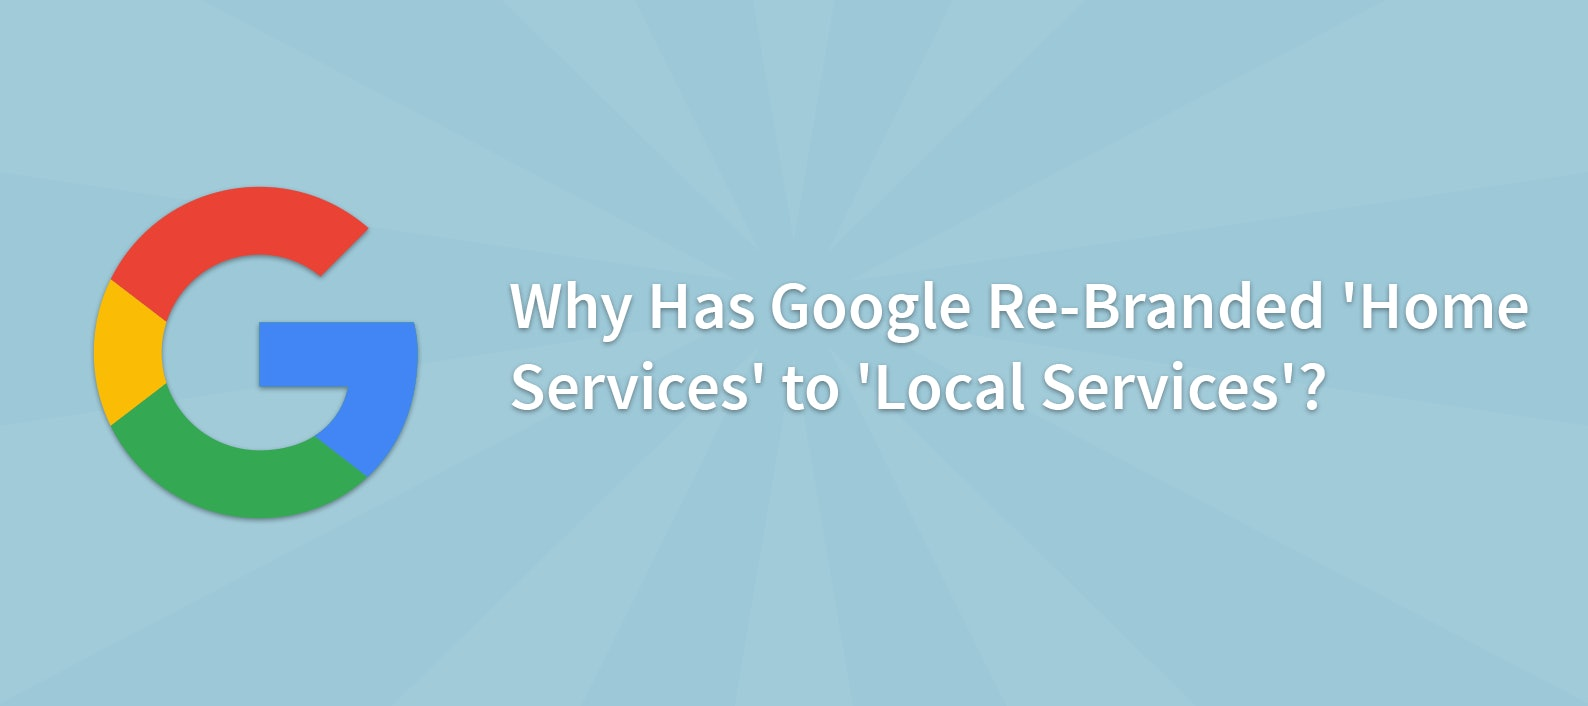 Why Has Google Re-Branded 'Home Services' to 'Local Services'?